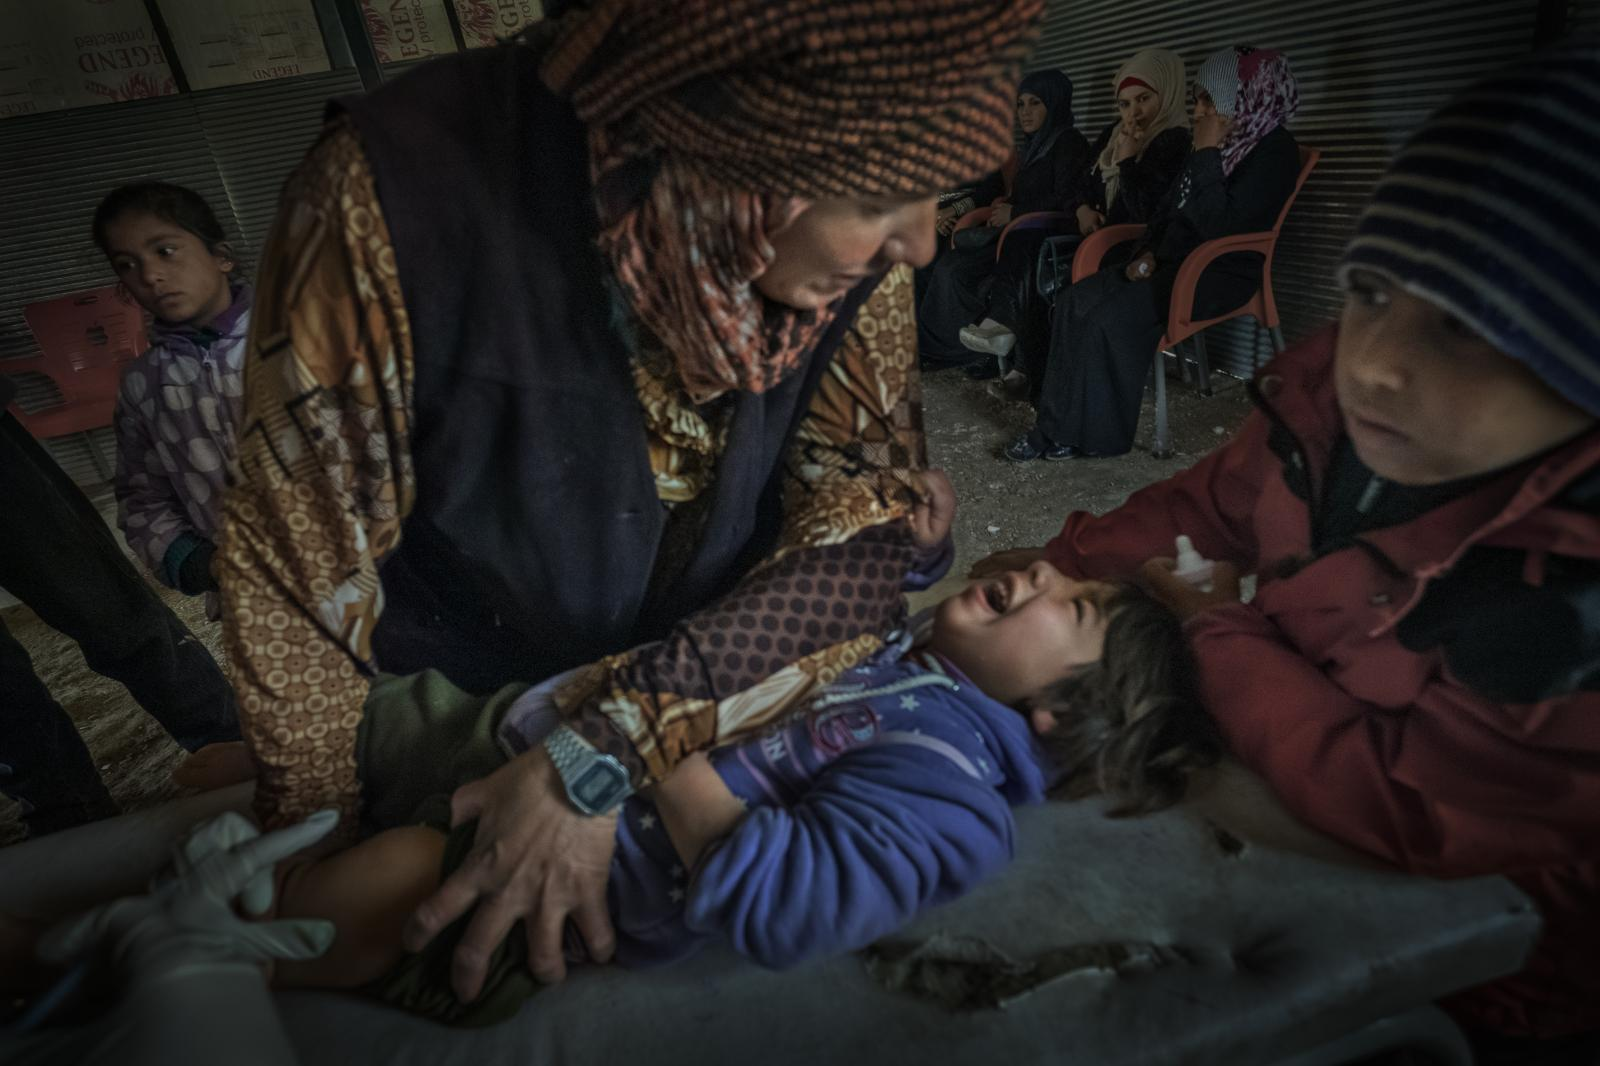 Hospital run by MSF (Doctors without Borders) in Ain Issa, during a vaccination campaign. ISIS left behind a large number of booby traps that affected many children who had to undergo amputations (Syria, 2018)